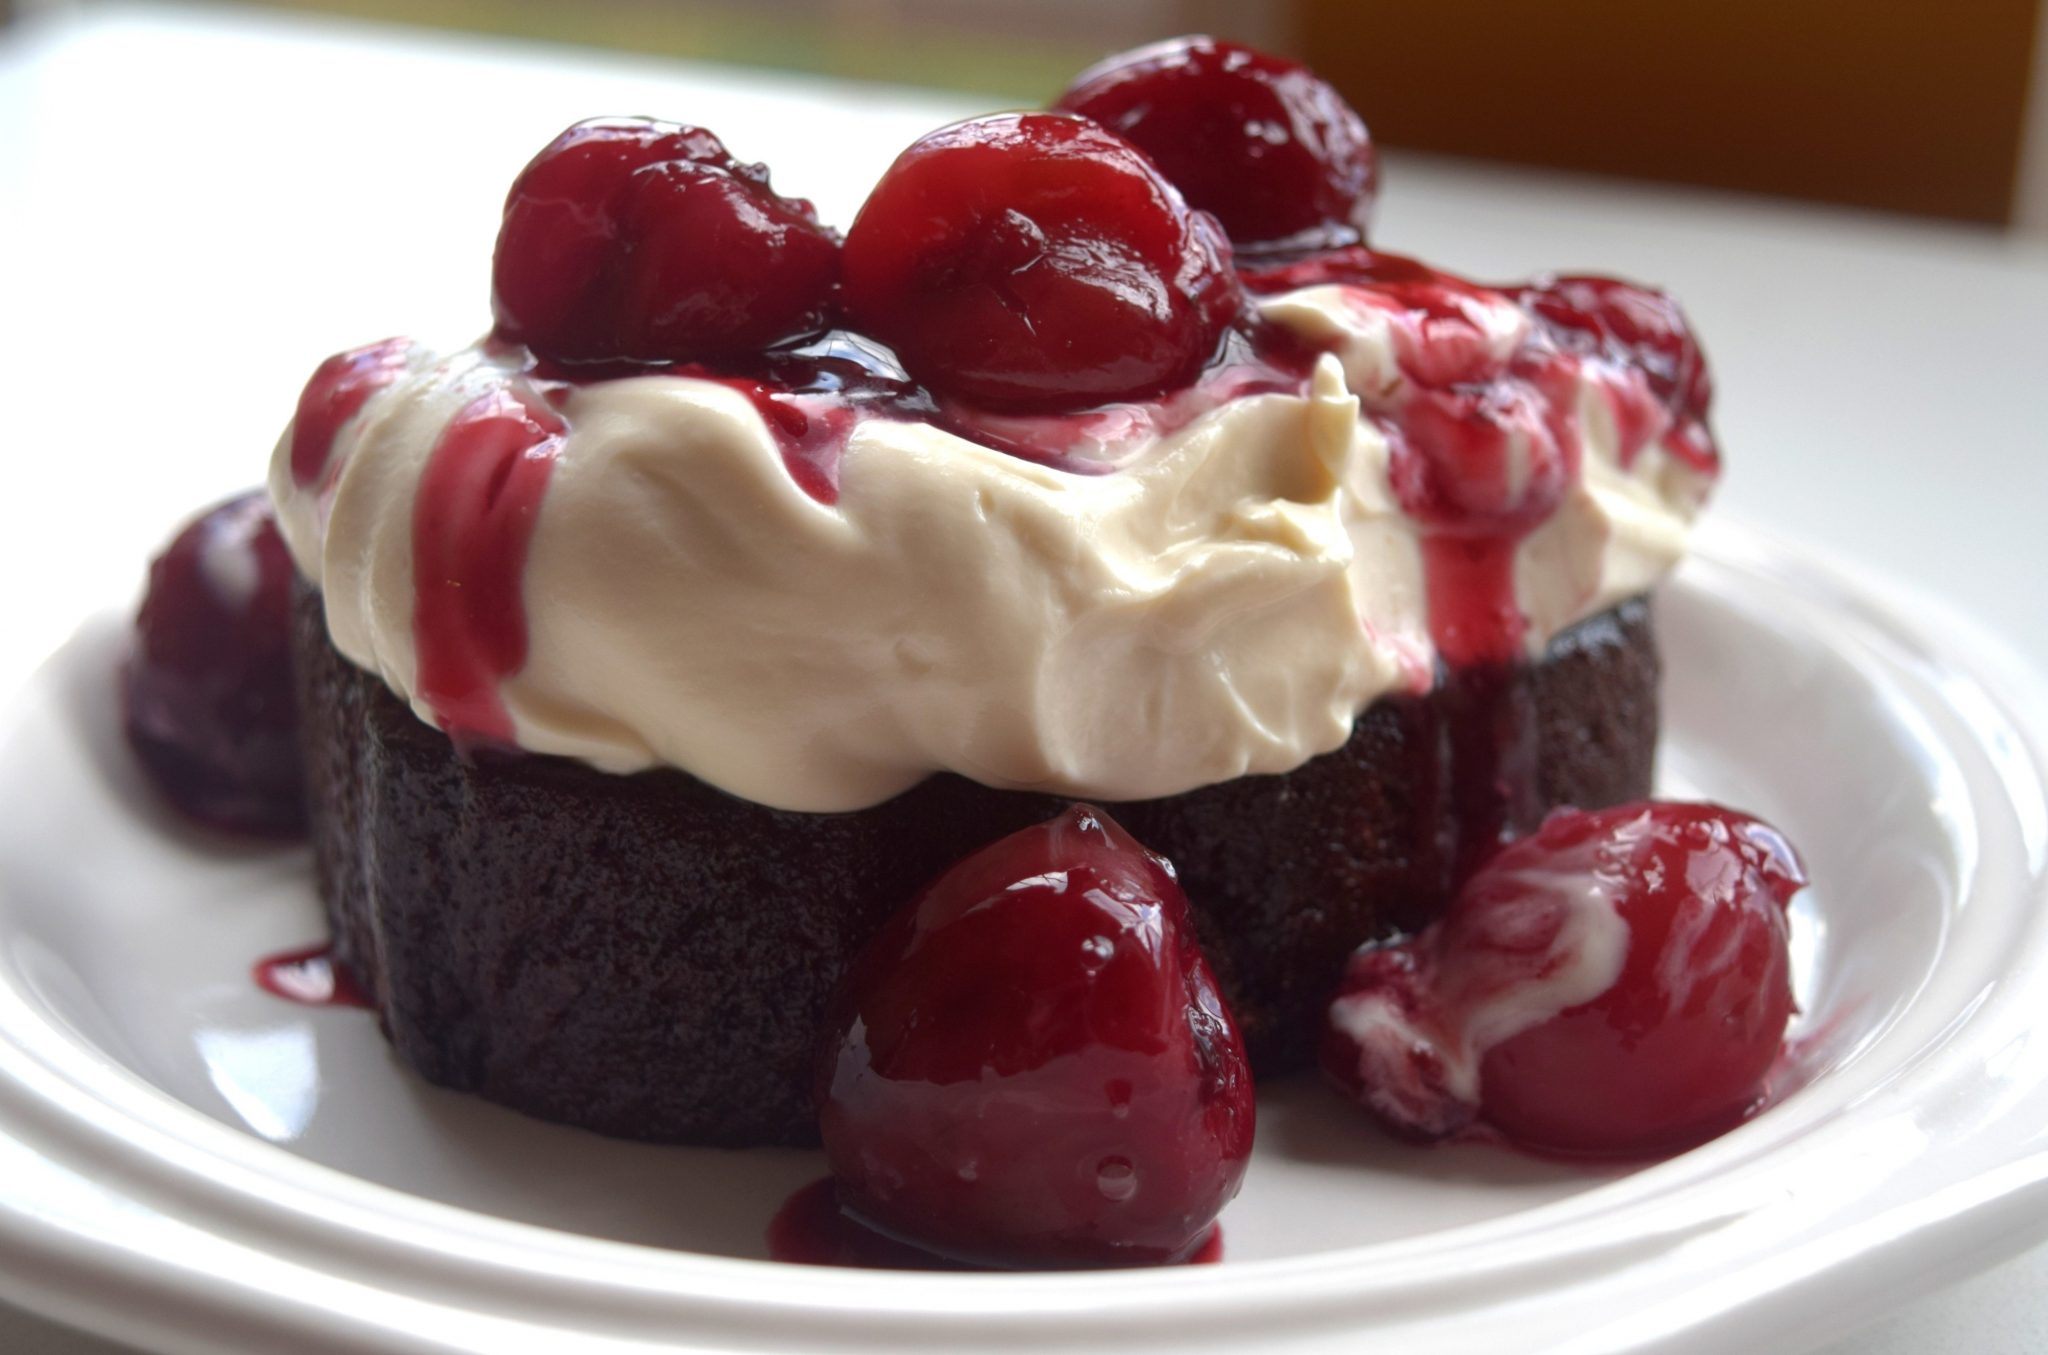 Giveaway and Peach Ale Cherries with Chocolate Stout Whipped Mascarpone on Chocolate Pound Cake